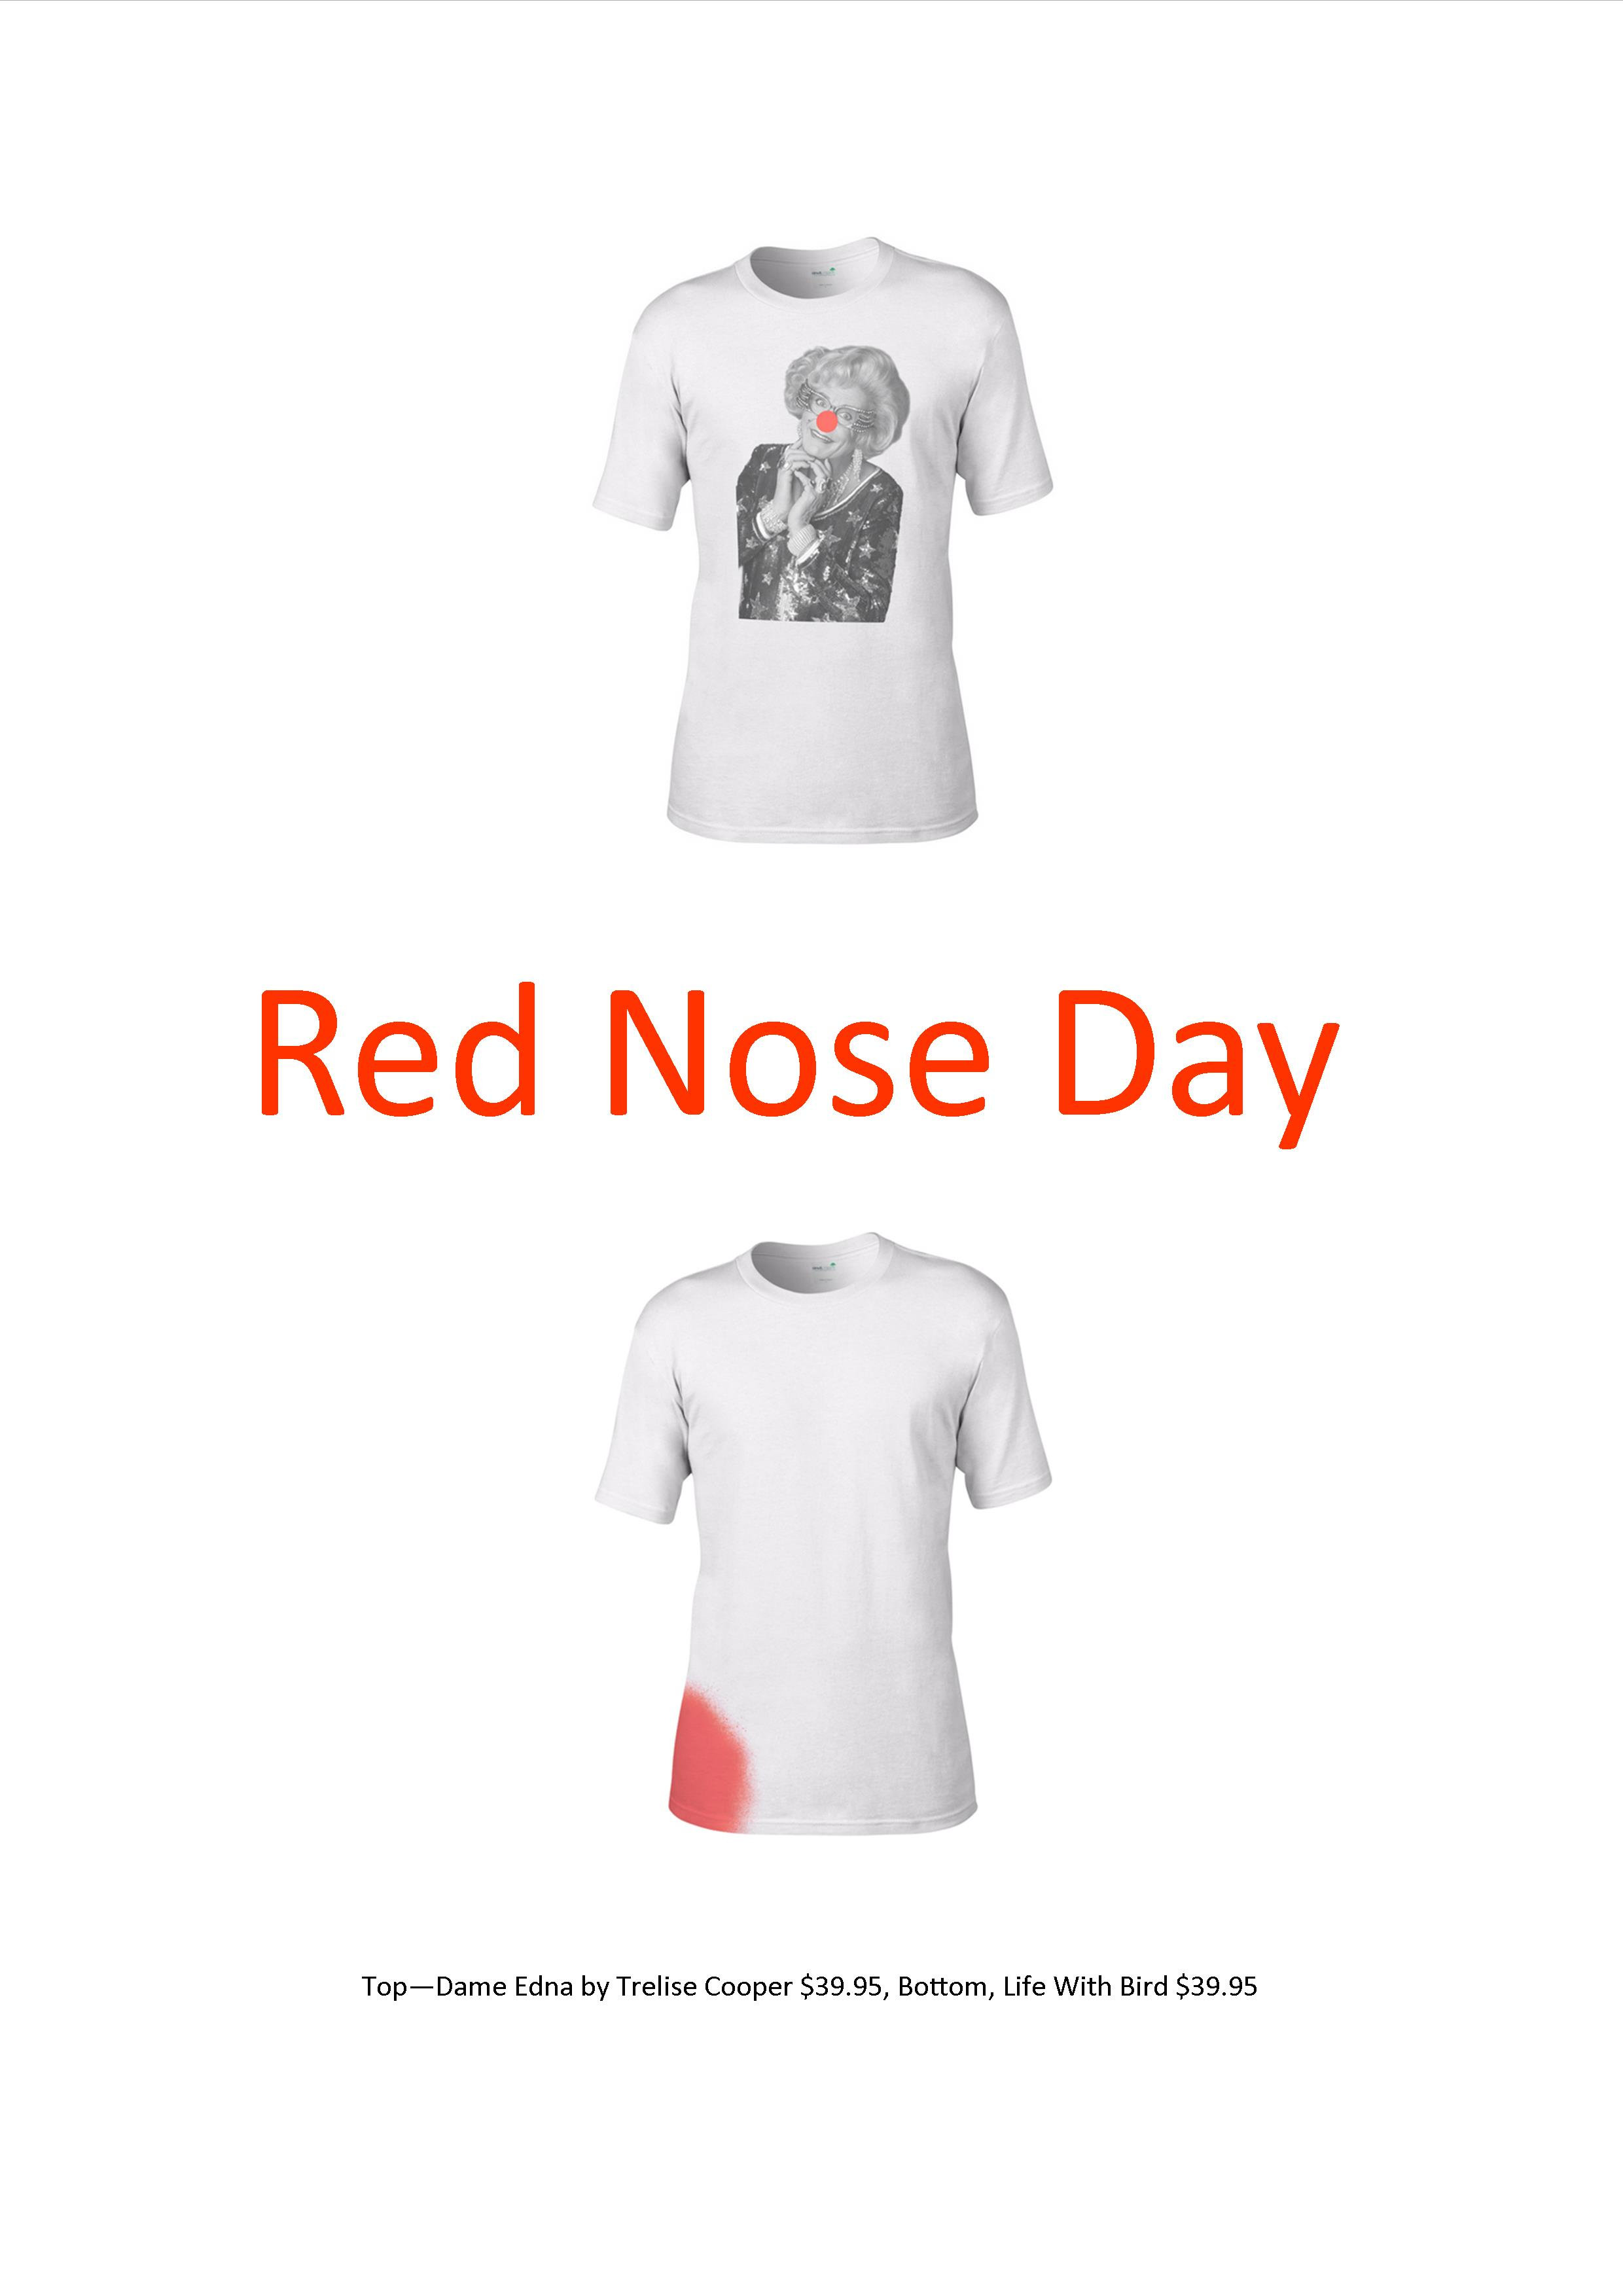 Red Nose Day is tomorrow